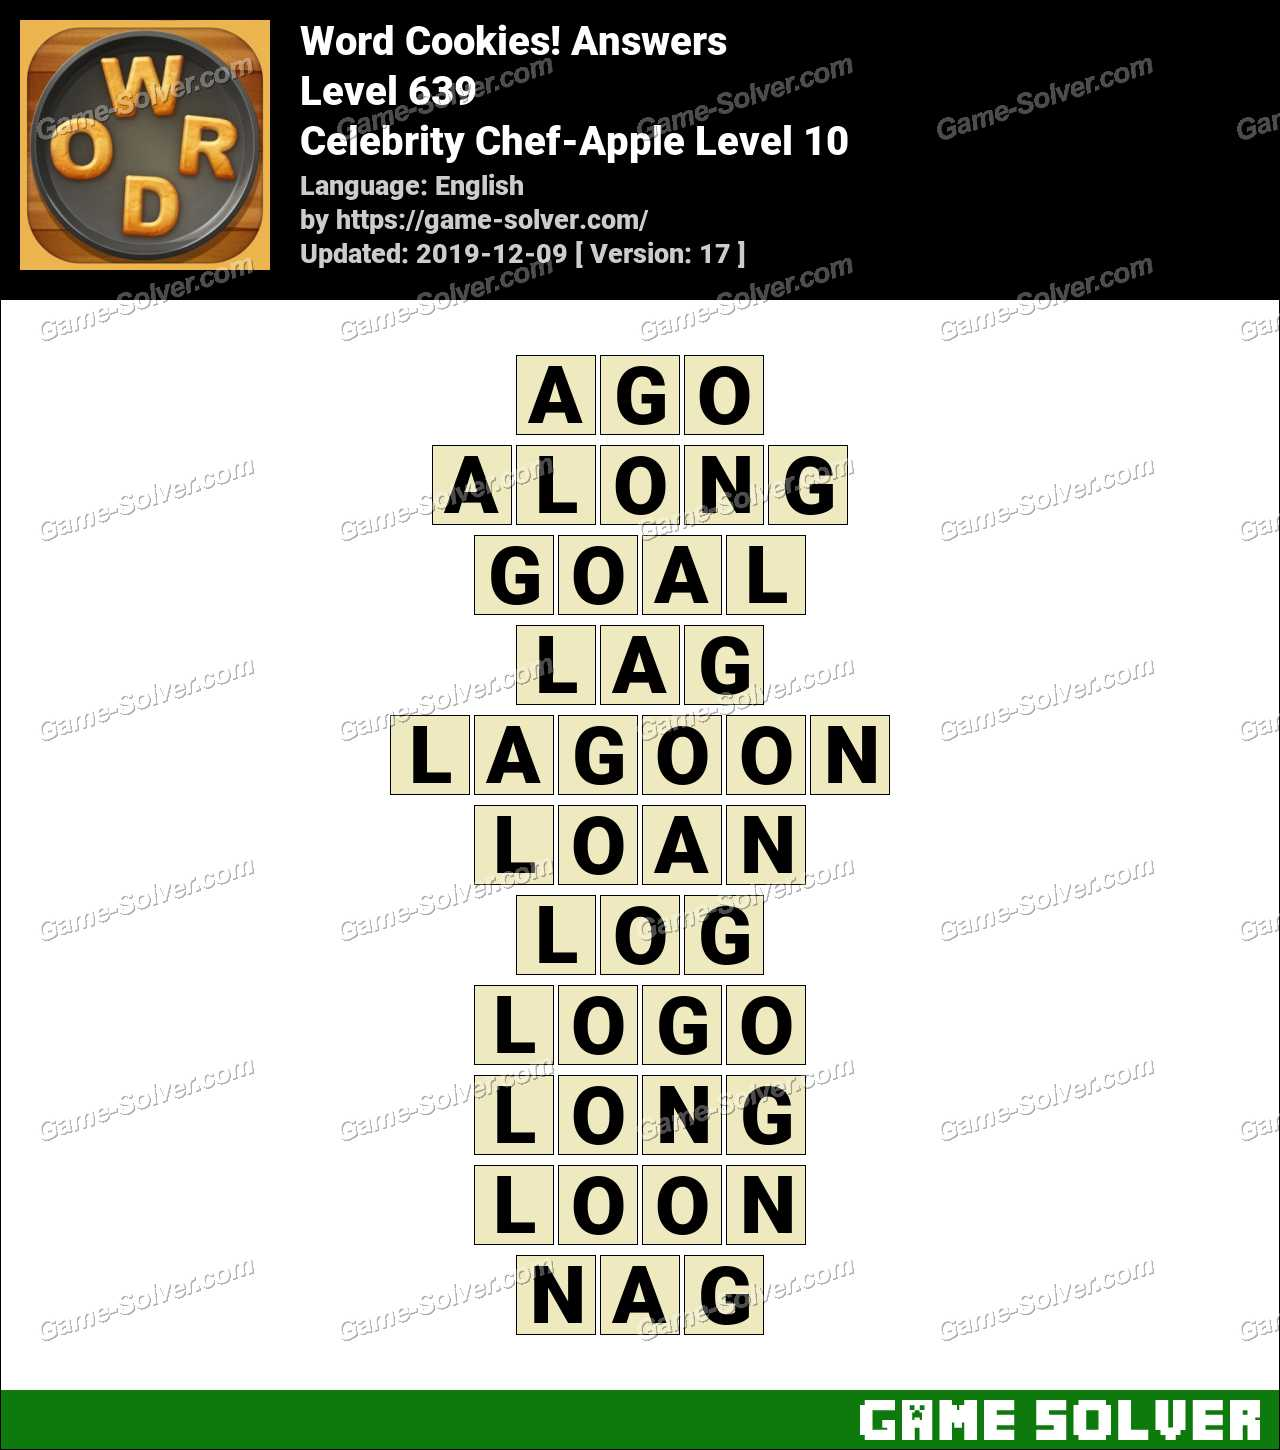 Word Cookies Celebrity Chef-Apple Level 10 Answers